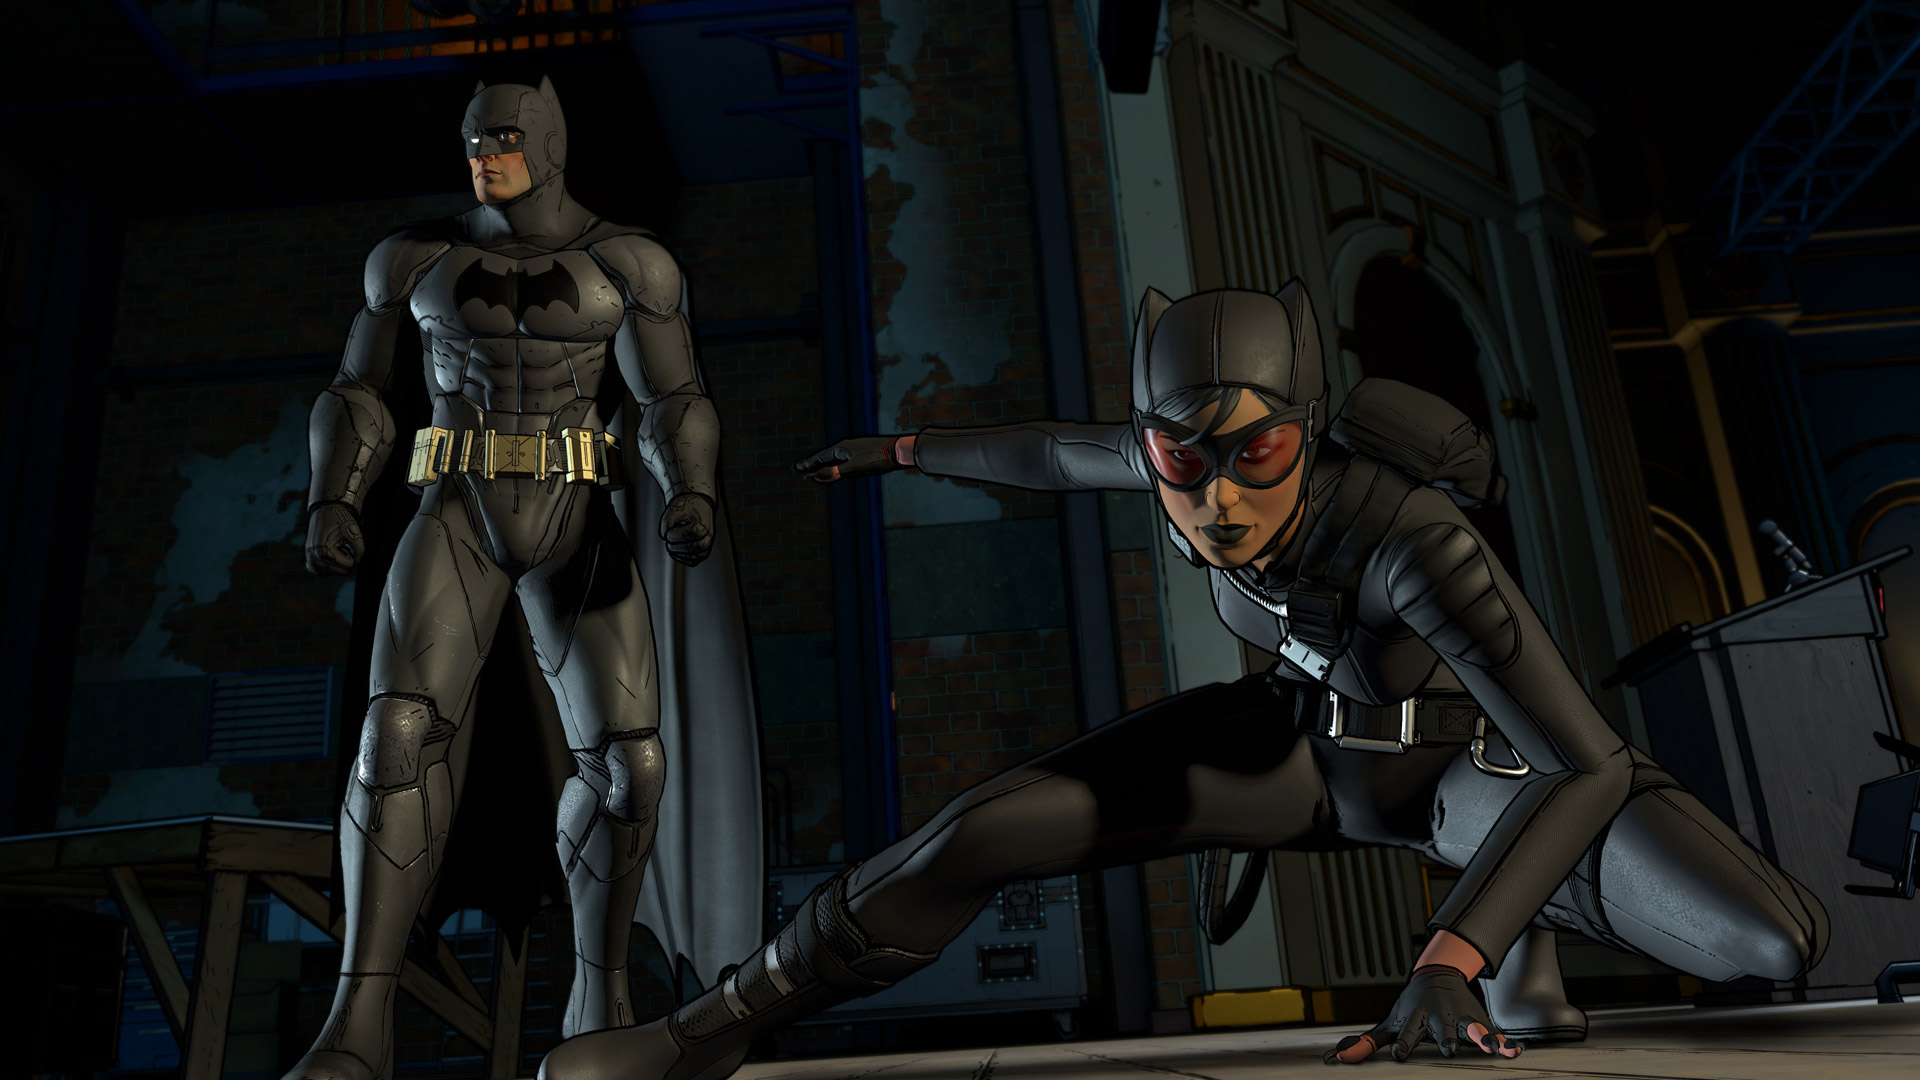 Free Batman: The Telltale Series Wallpaper in 1920x1080